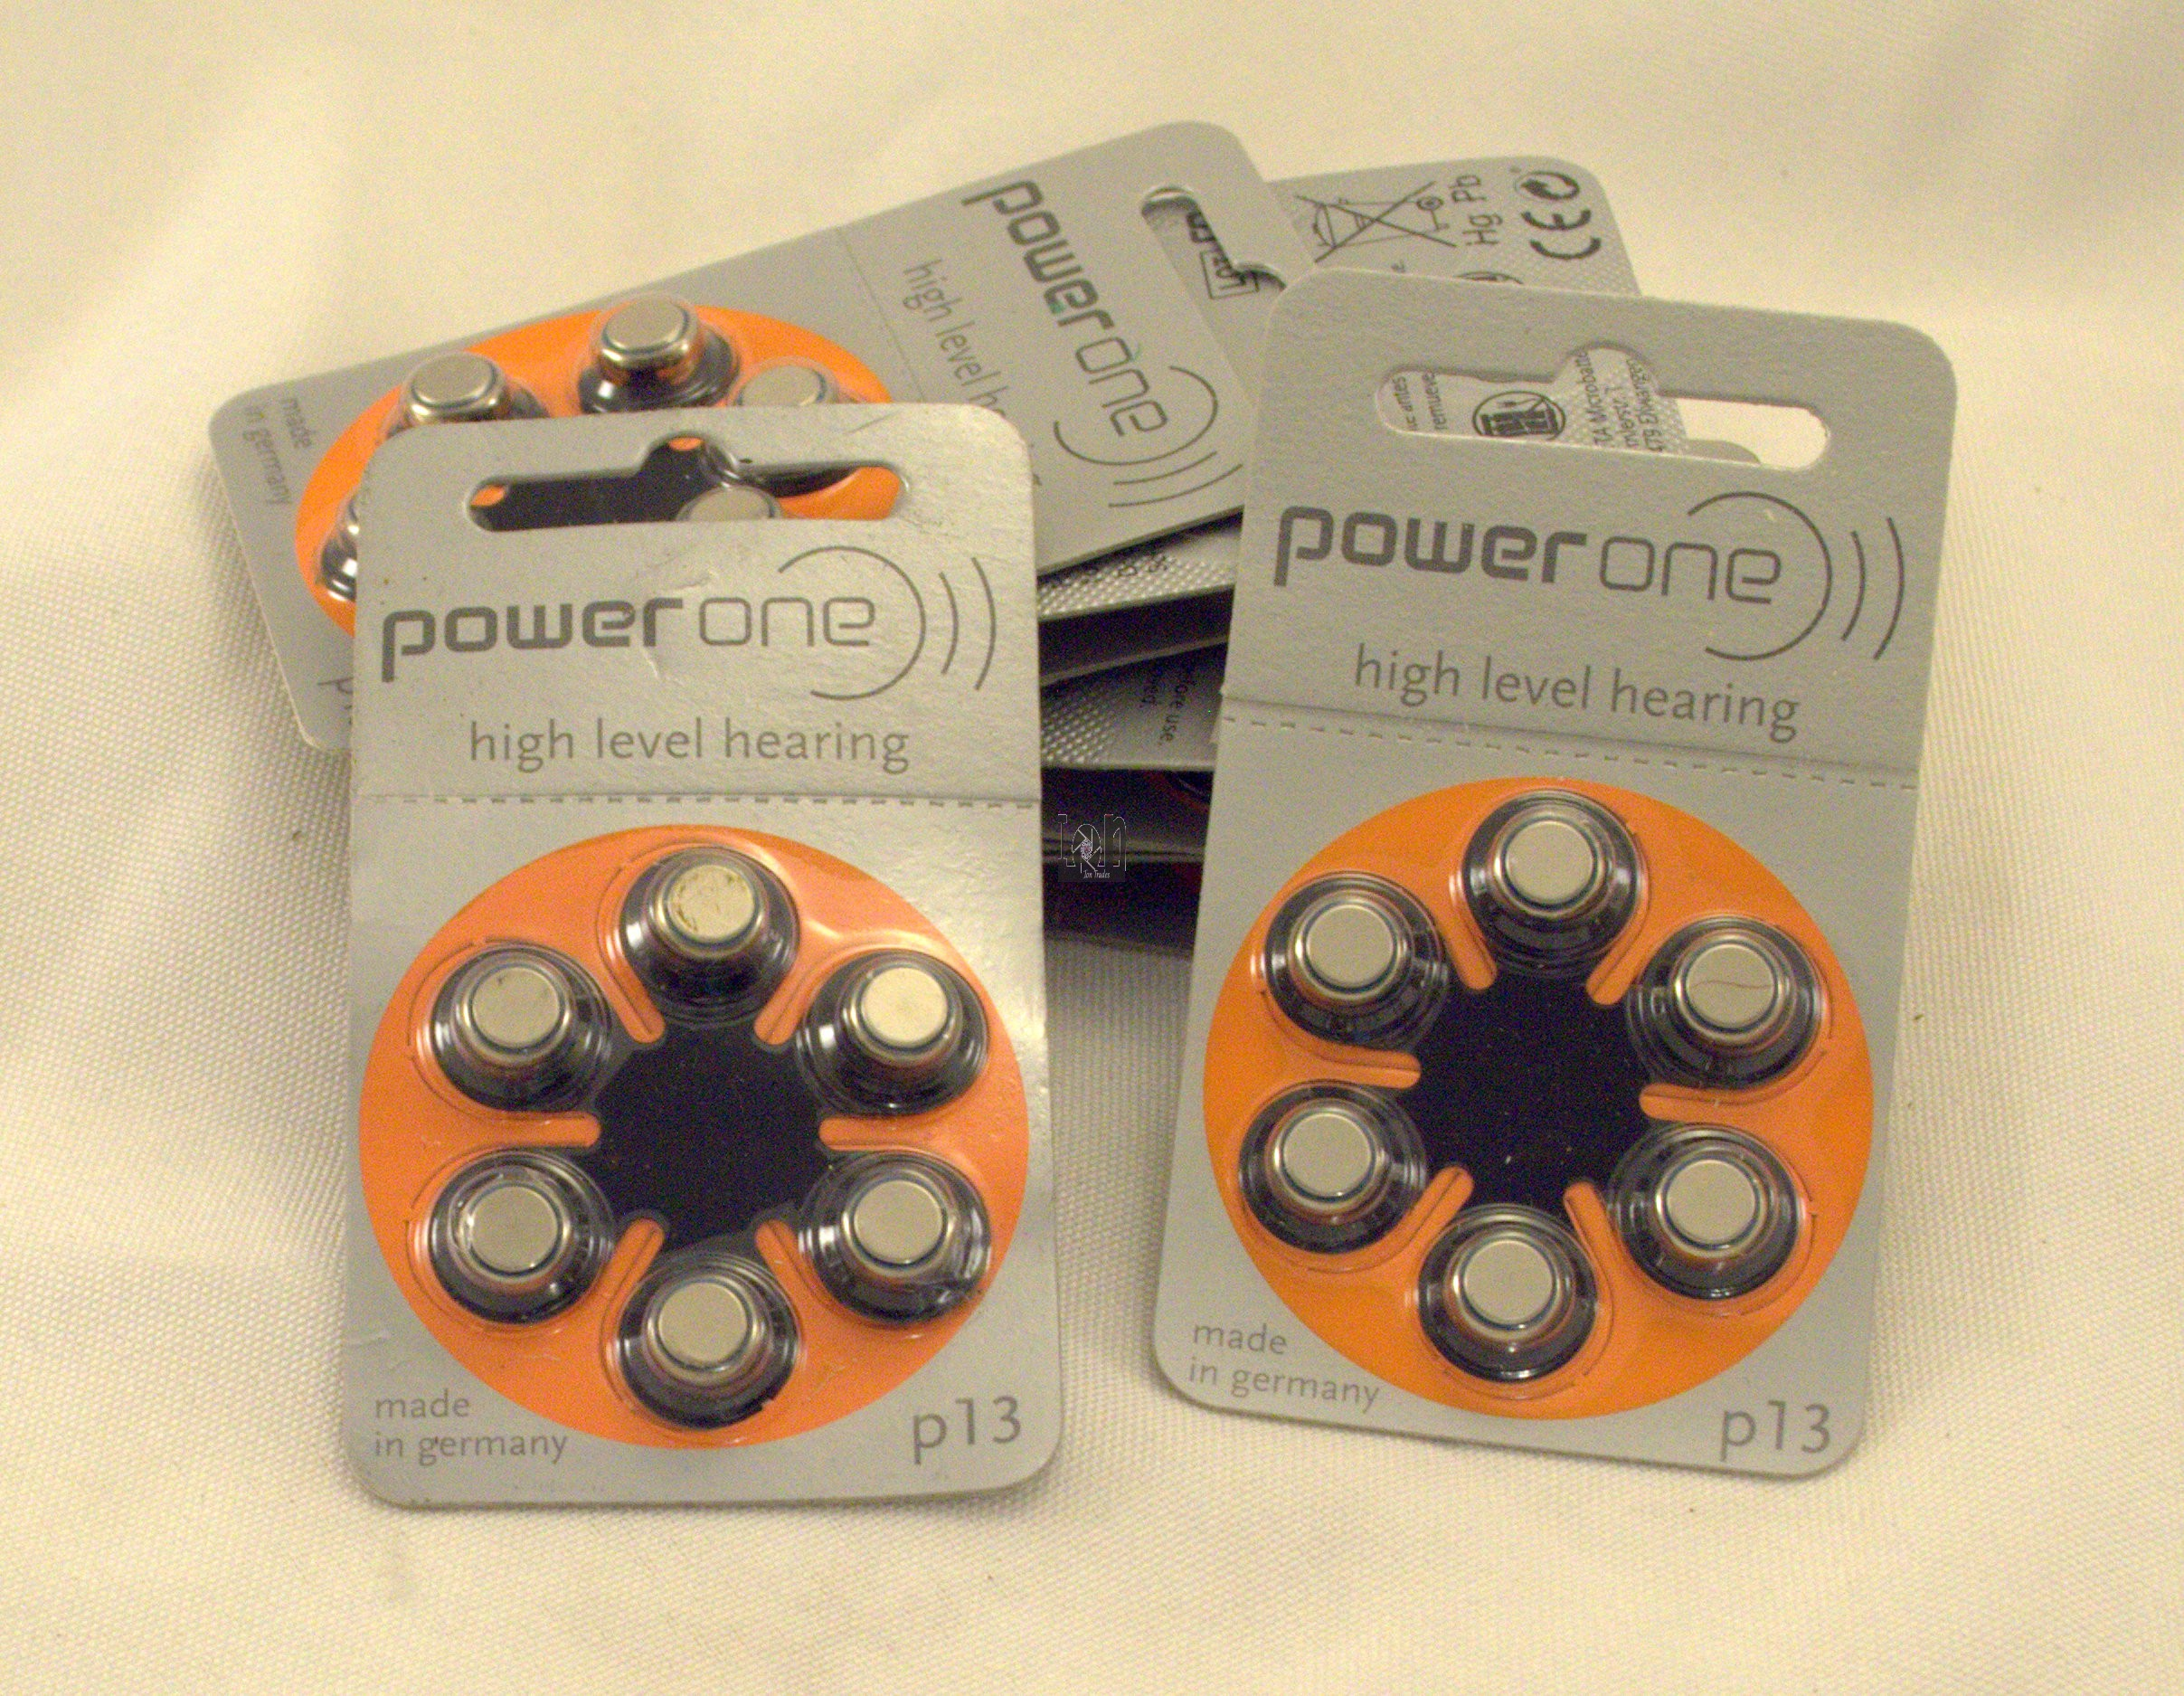 60 Power One P13 hearing Aid Batteries 2017EXP 60-Batteries 10-Packs